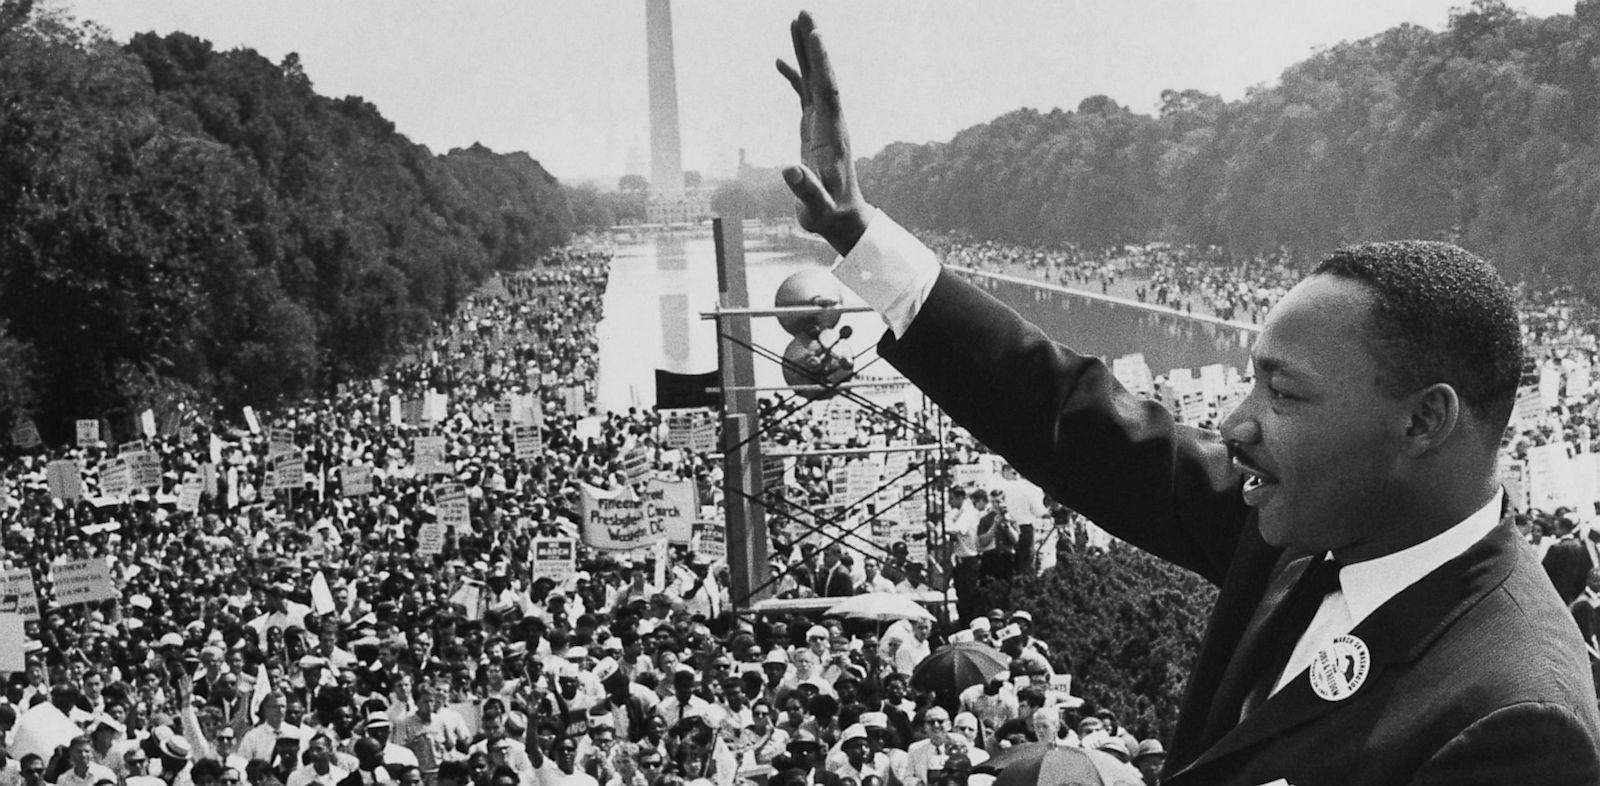 mlk essay naacp offers scholarship for martin luther king jr essay  term paper on martin luther king speech the world house essay martin luther king jr part